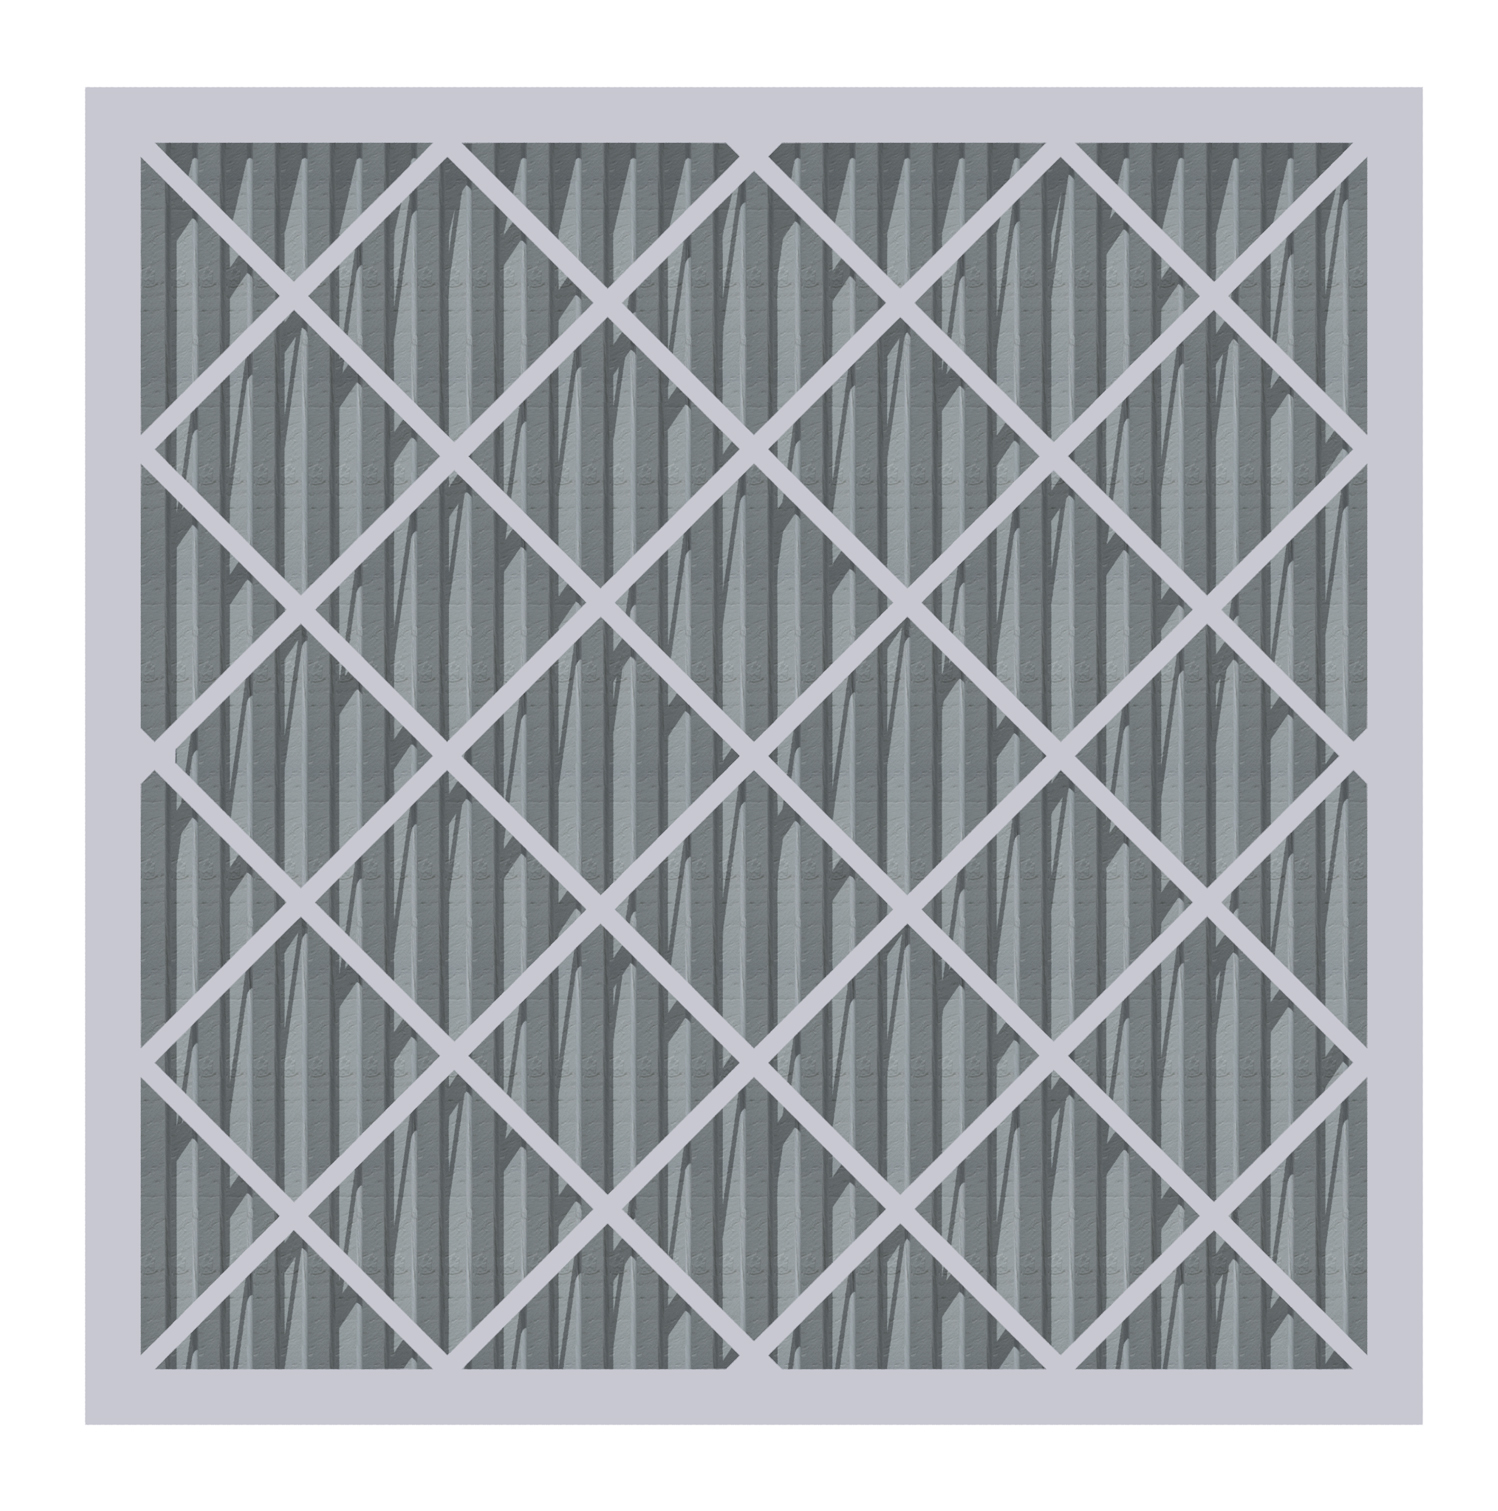 Air Filtration System - Filtration section 3